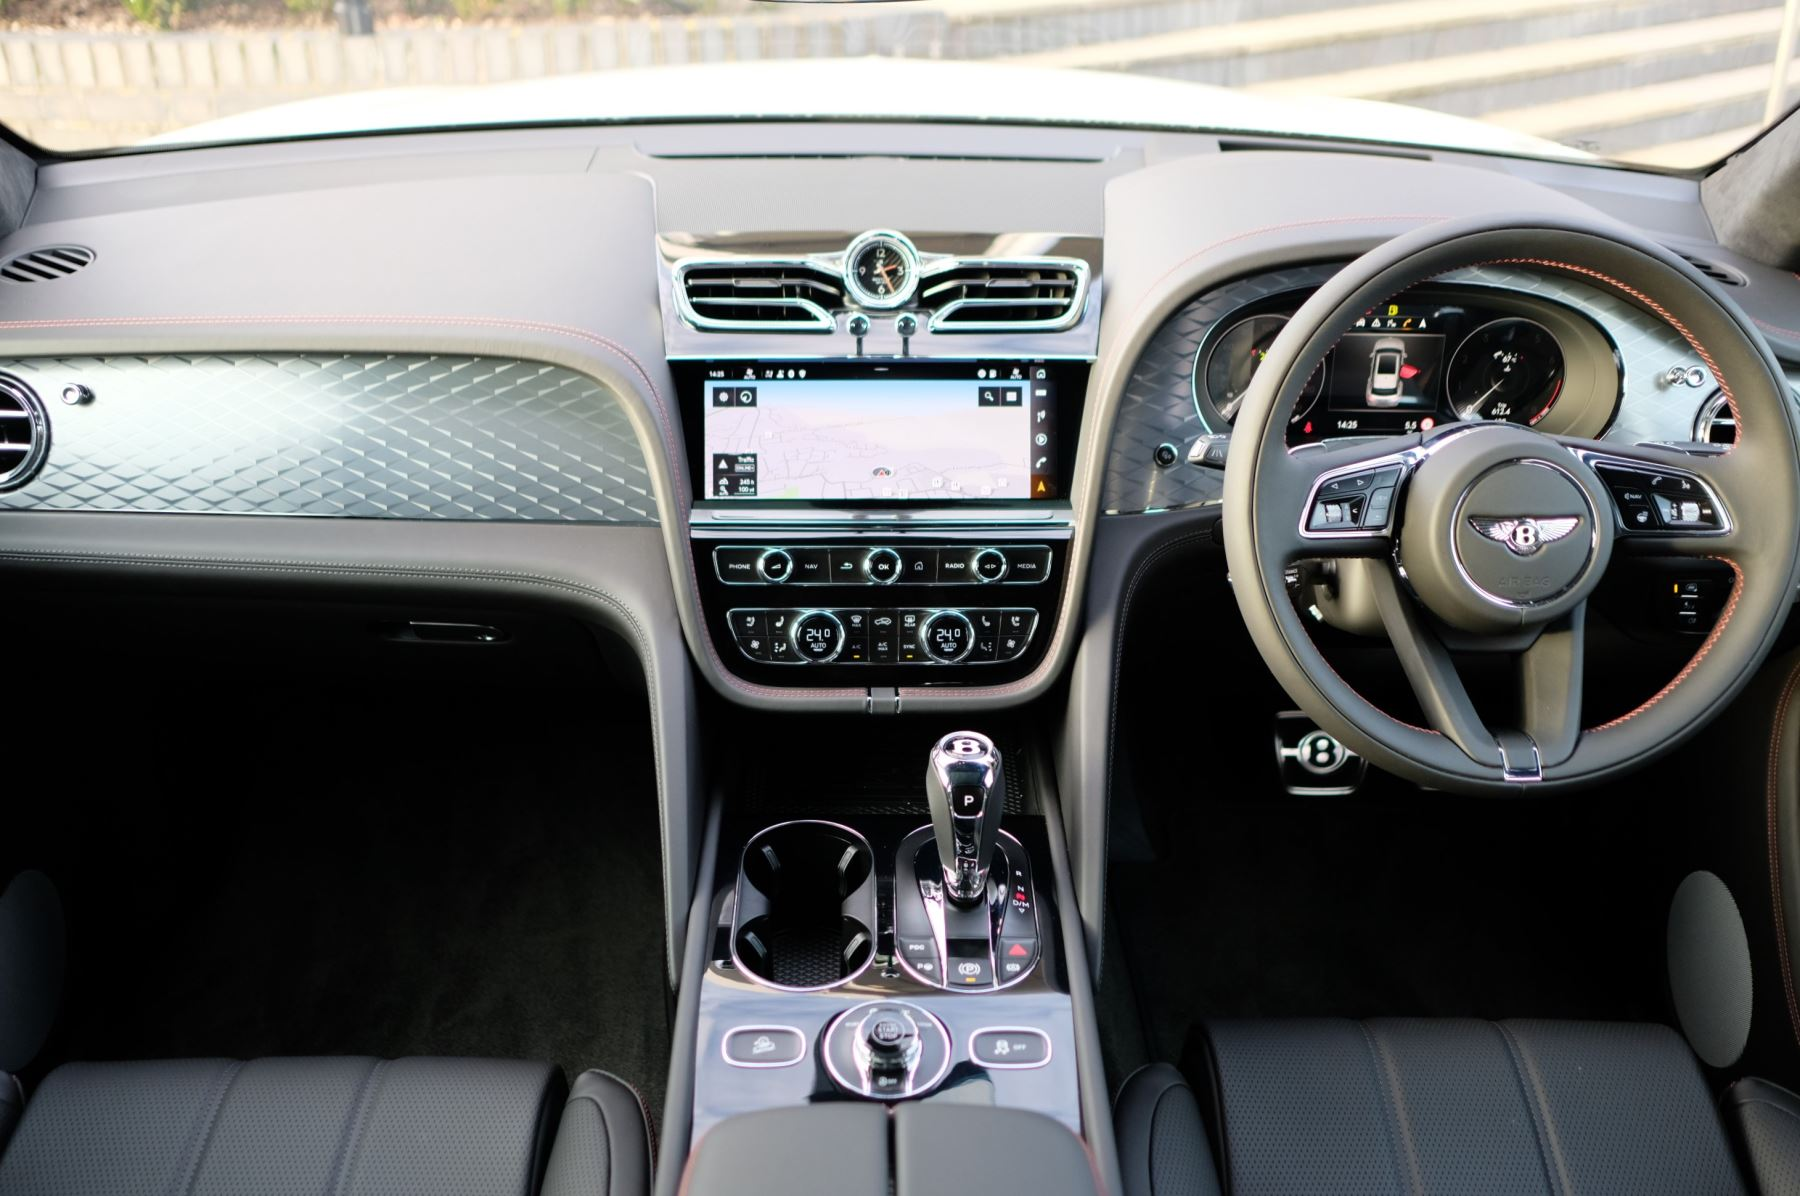 Bentley Bentayga 4.0 V8 - Touring and Front Seat Comfort Specification  image 12